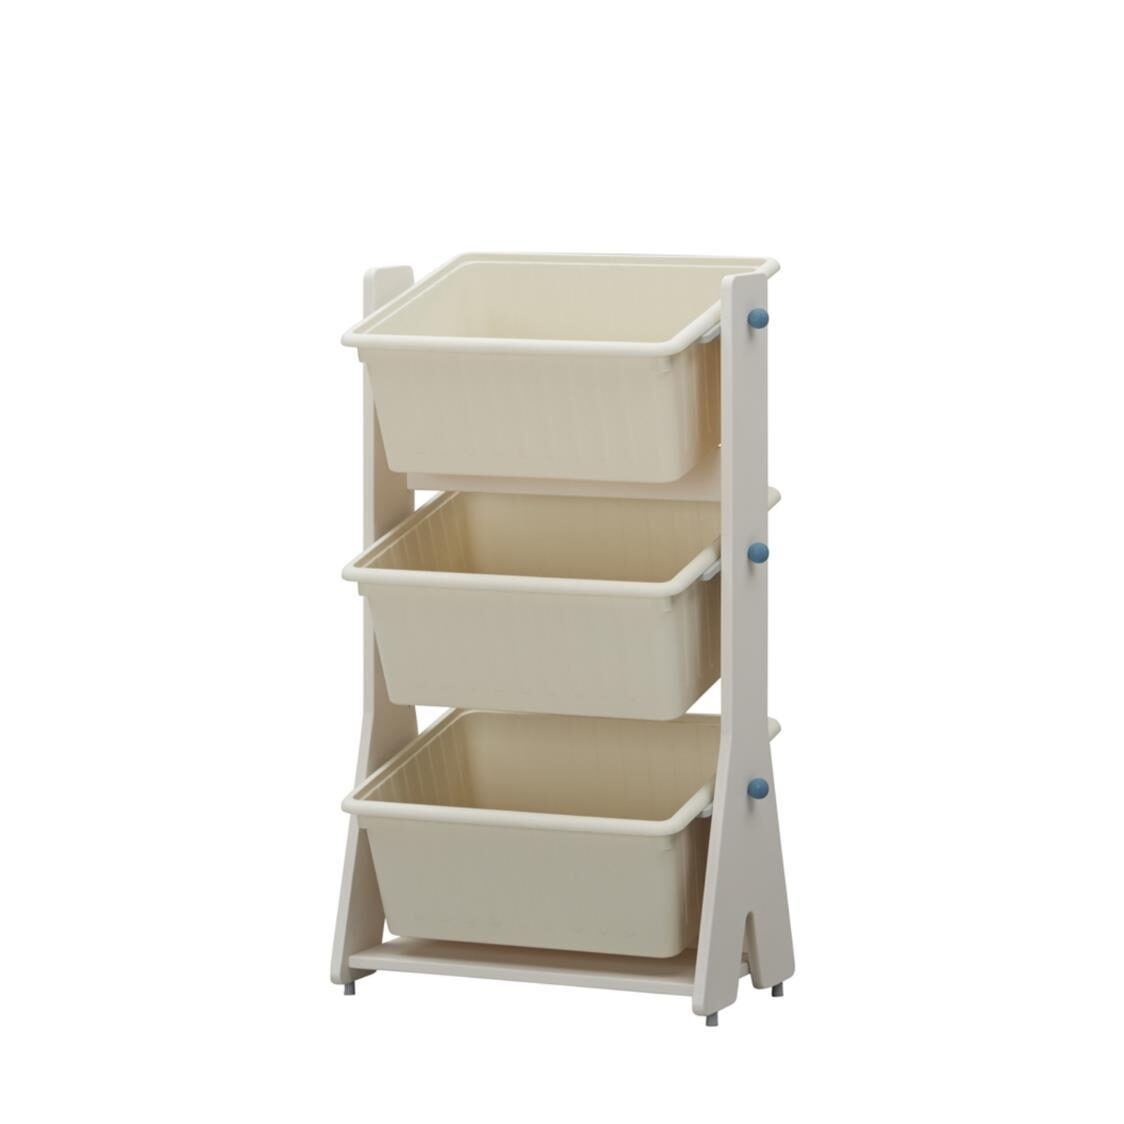 Iloom Tinkle Pop Toy Storage IVKS Ivory Sky Blue